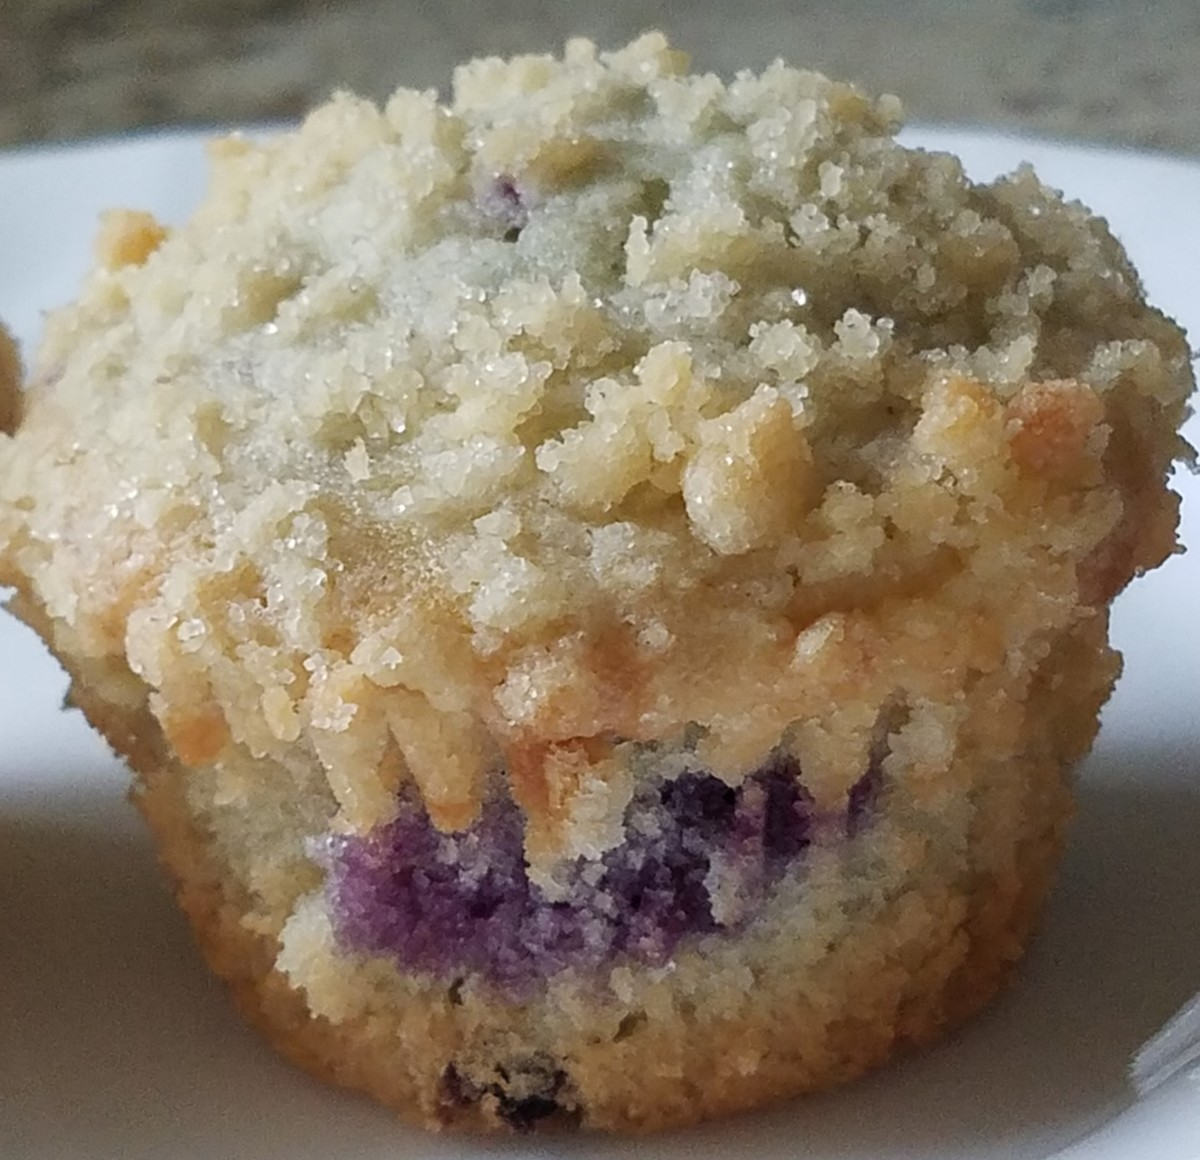 The finished blueberry crumb muffin.